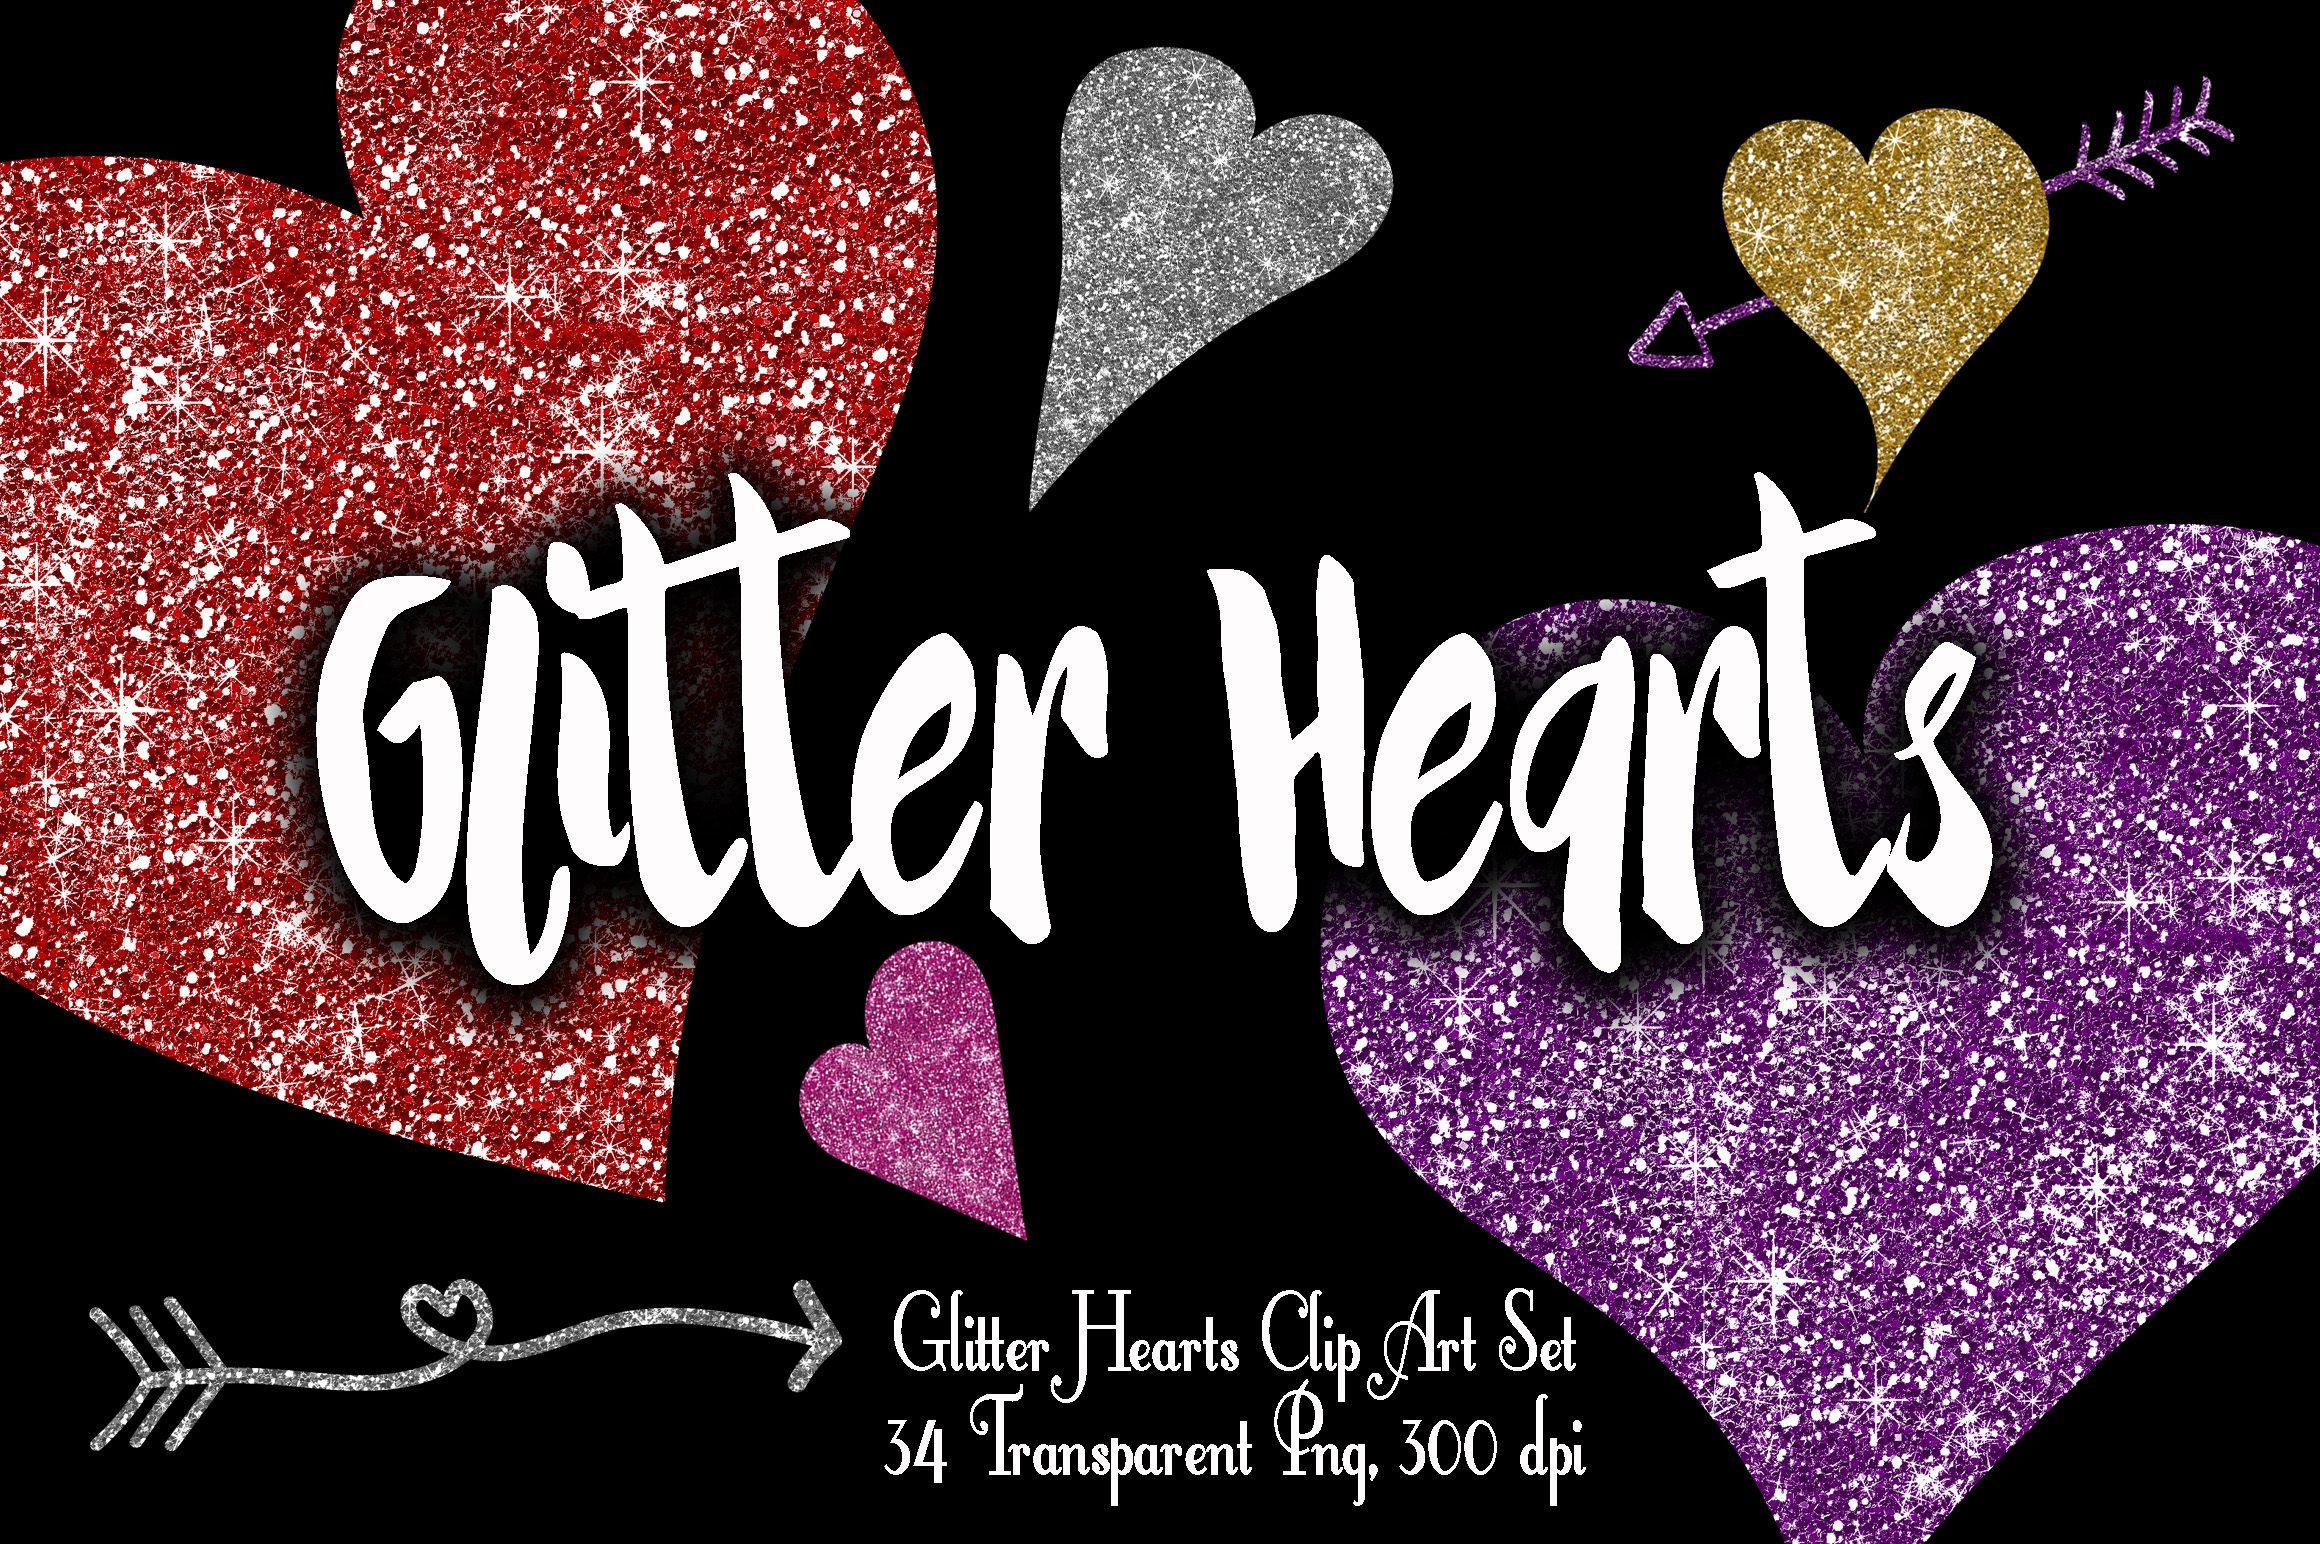 Glitter Valentine Hearts Clip Art - PNG Graphic Illustrations By oldmarketdesigns - Image 1